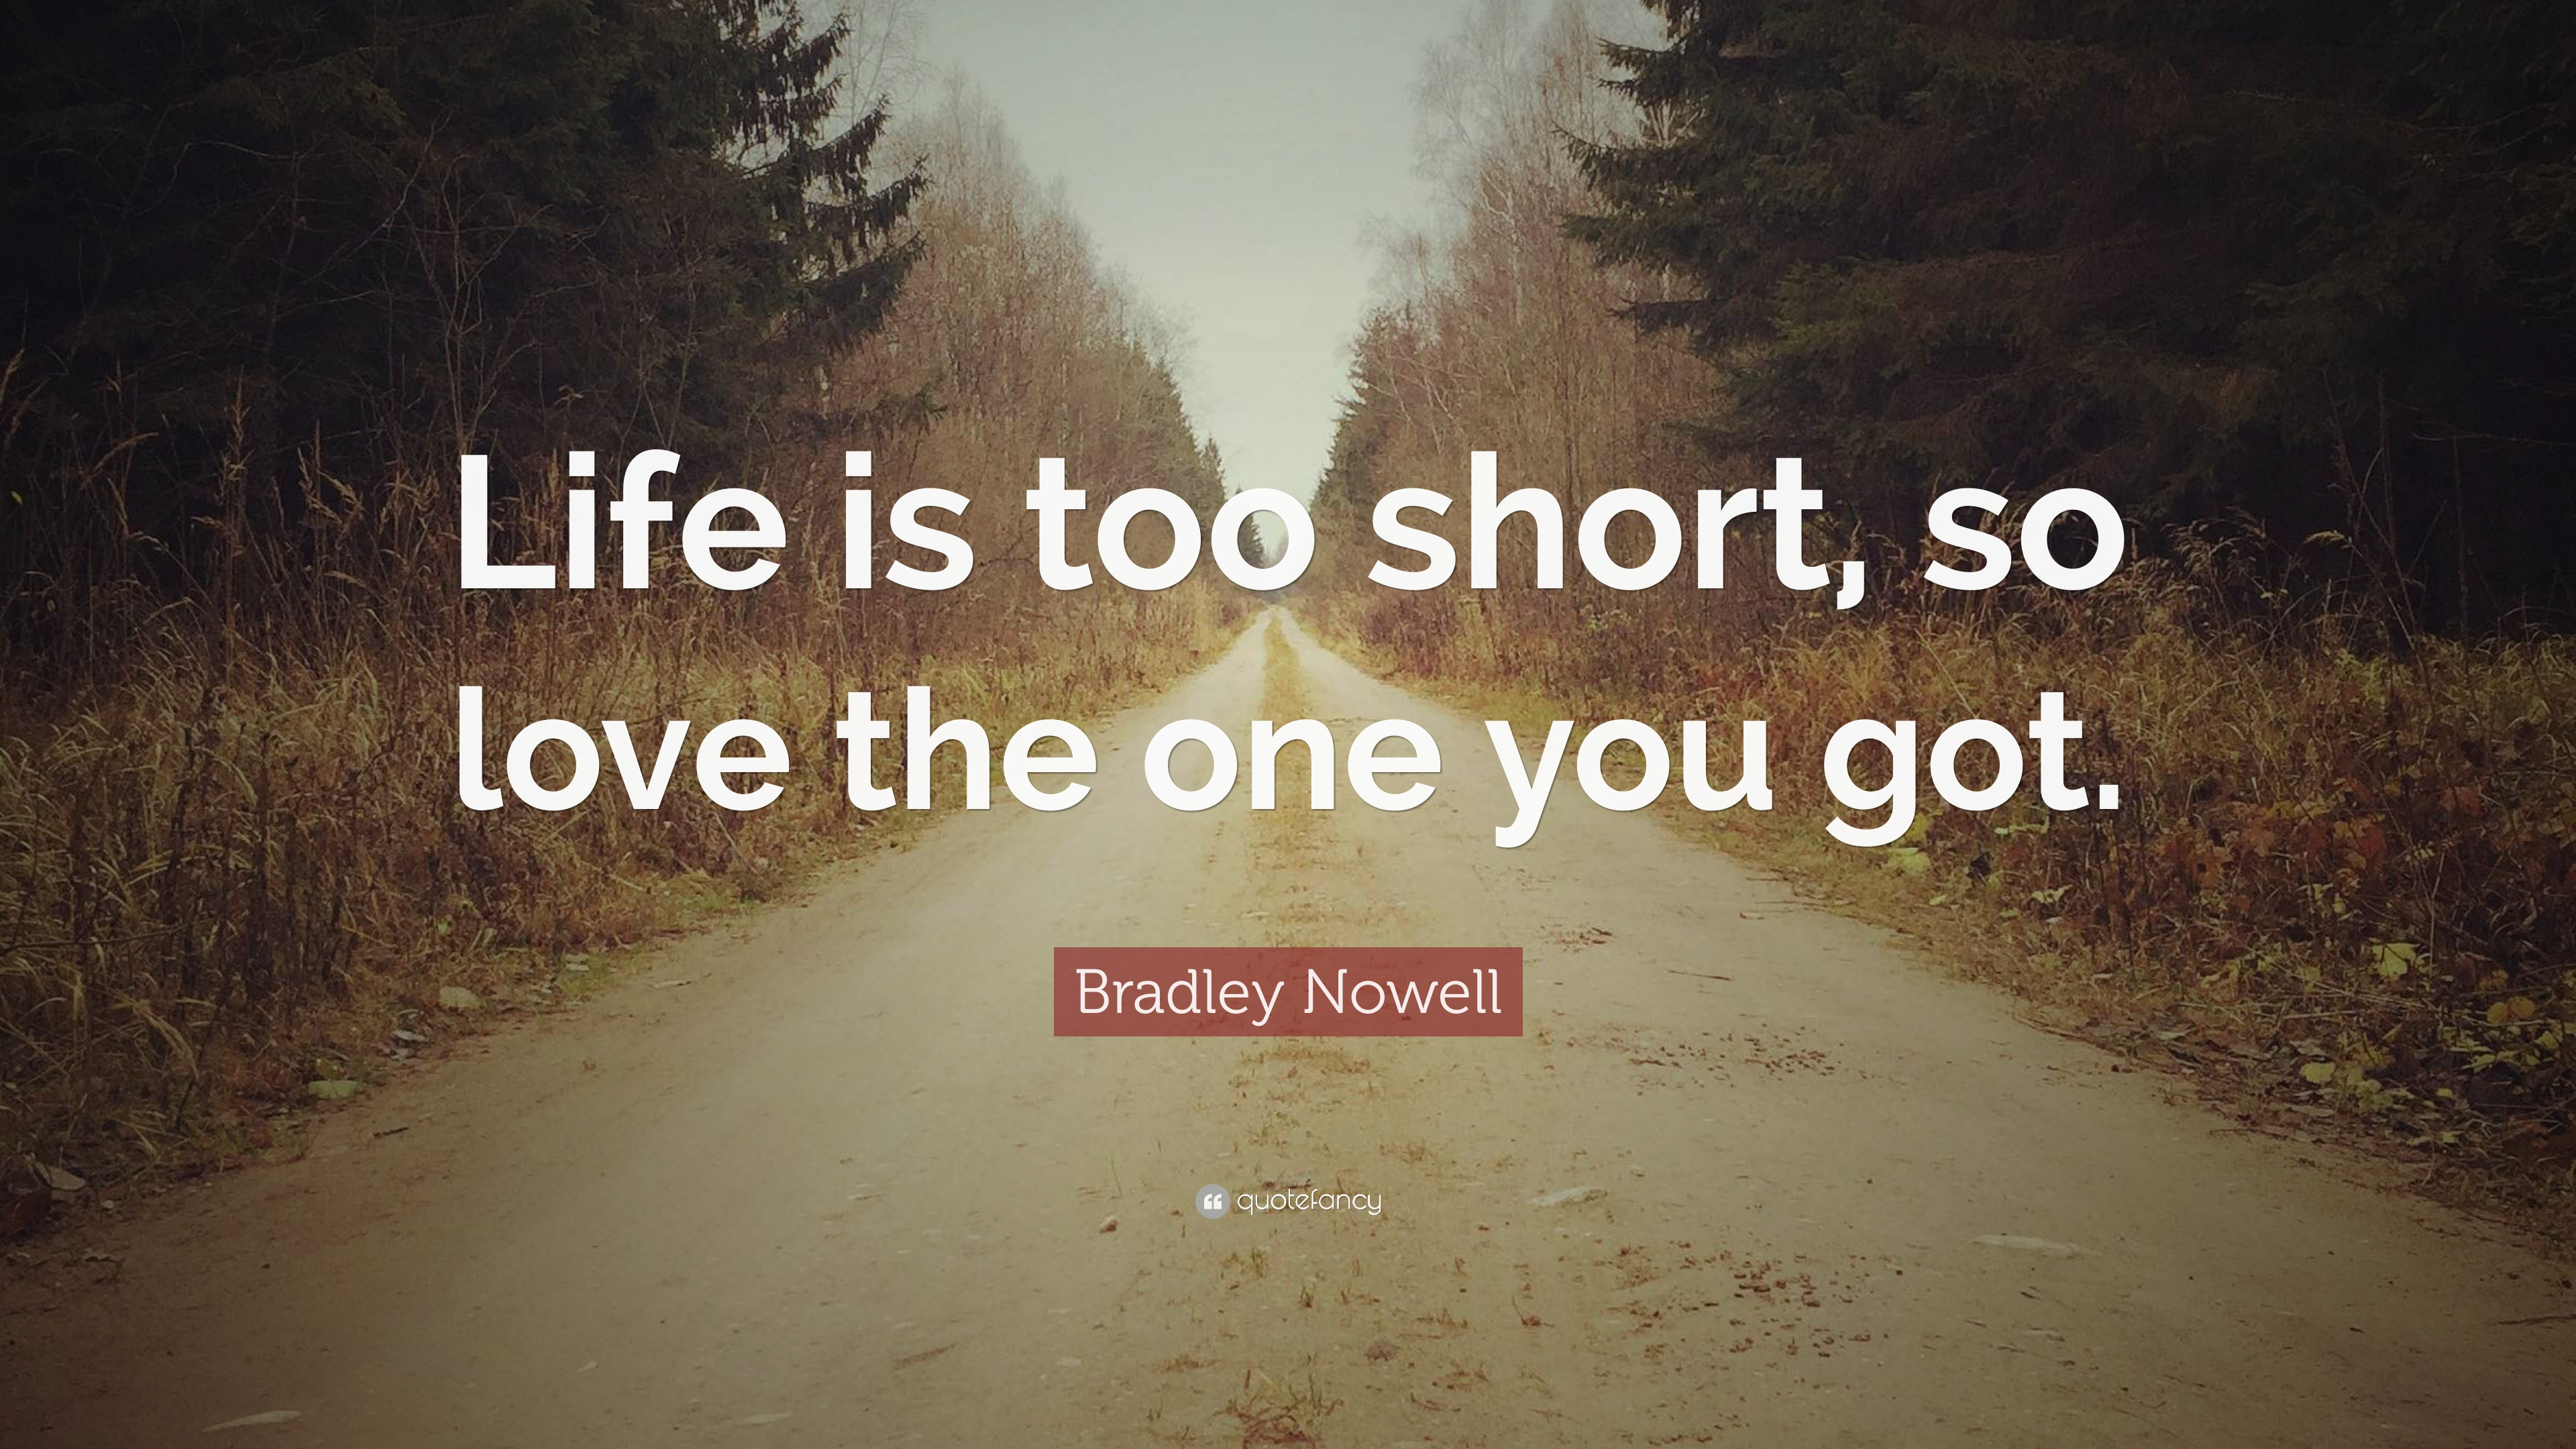 Bradley Nowell Quote Life Is Too Short So Love The One You Got